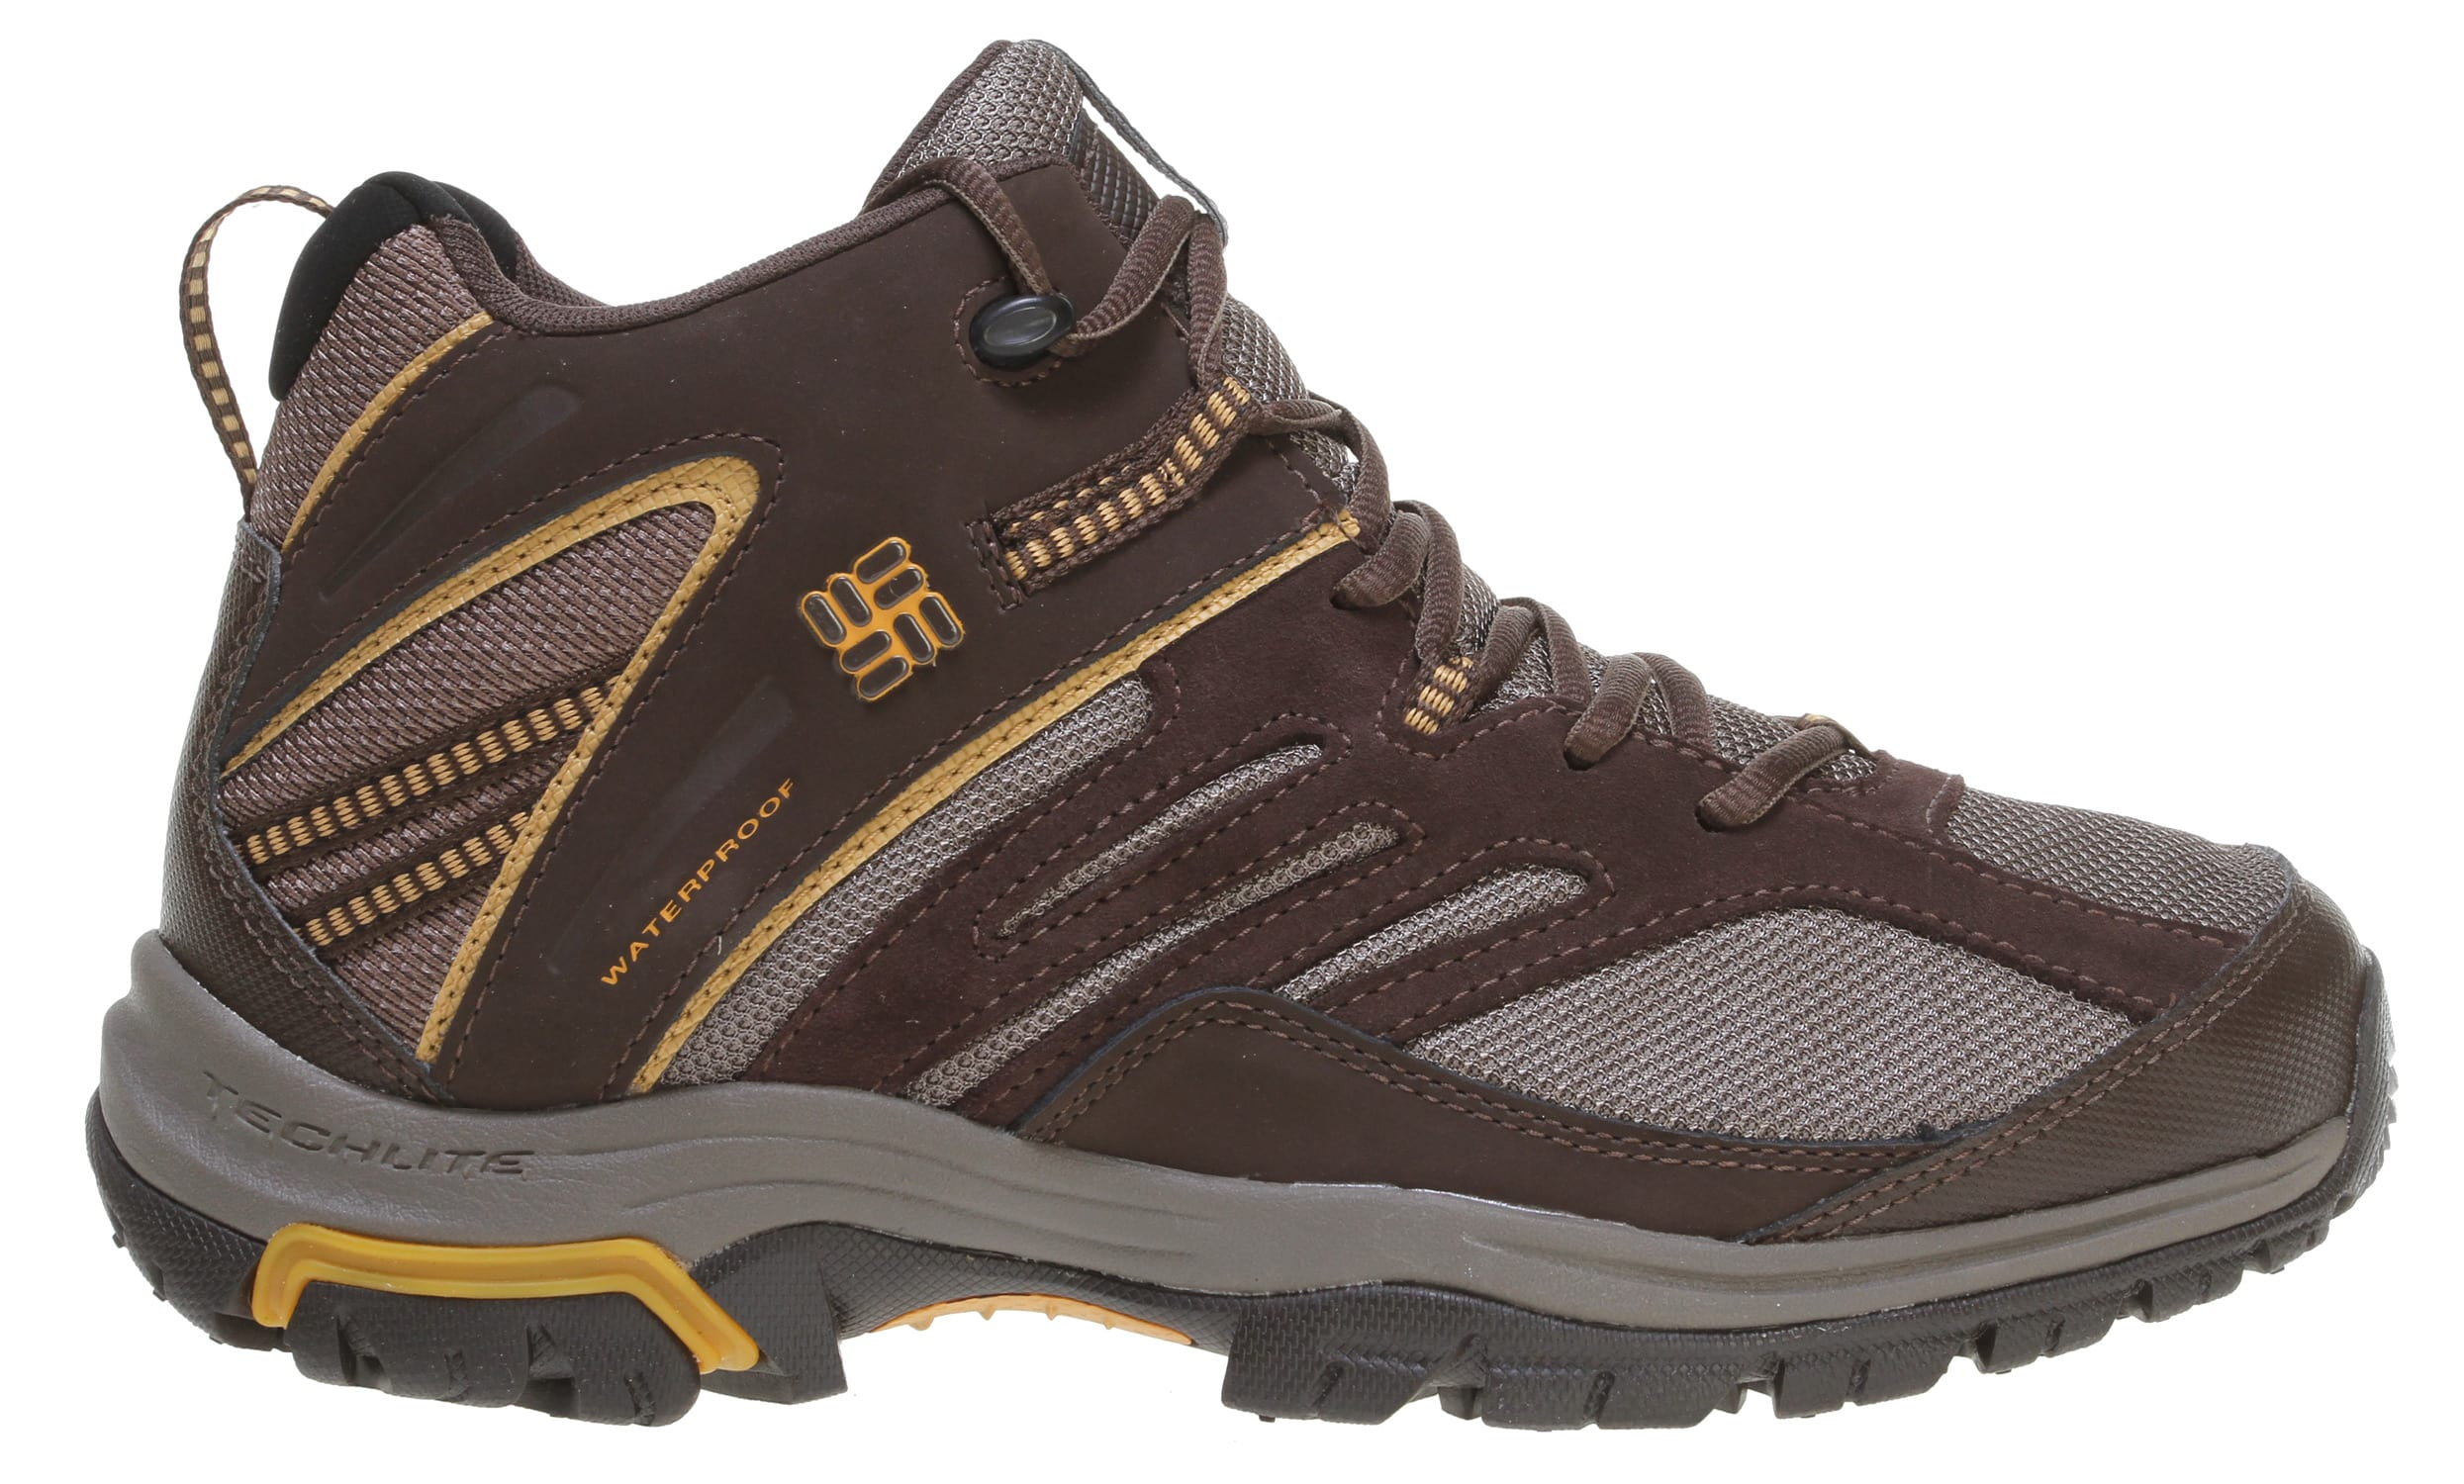 Shop for Columbia Shasta Ridge Mid Omni-Tech Hiking Boots Bungee Cord - Men's